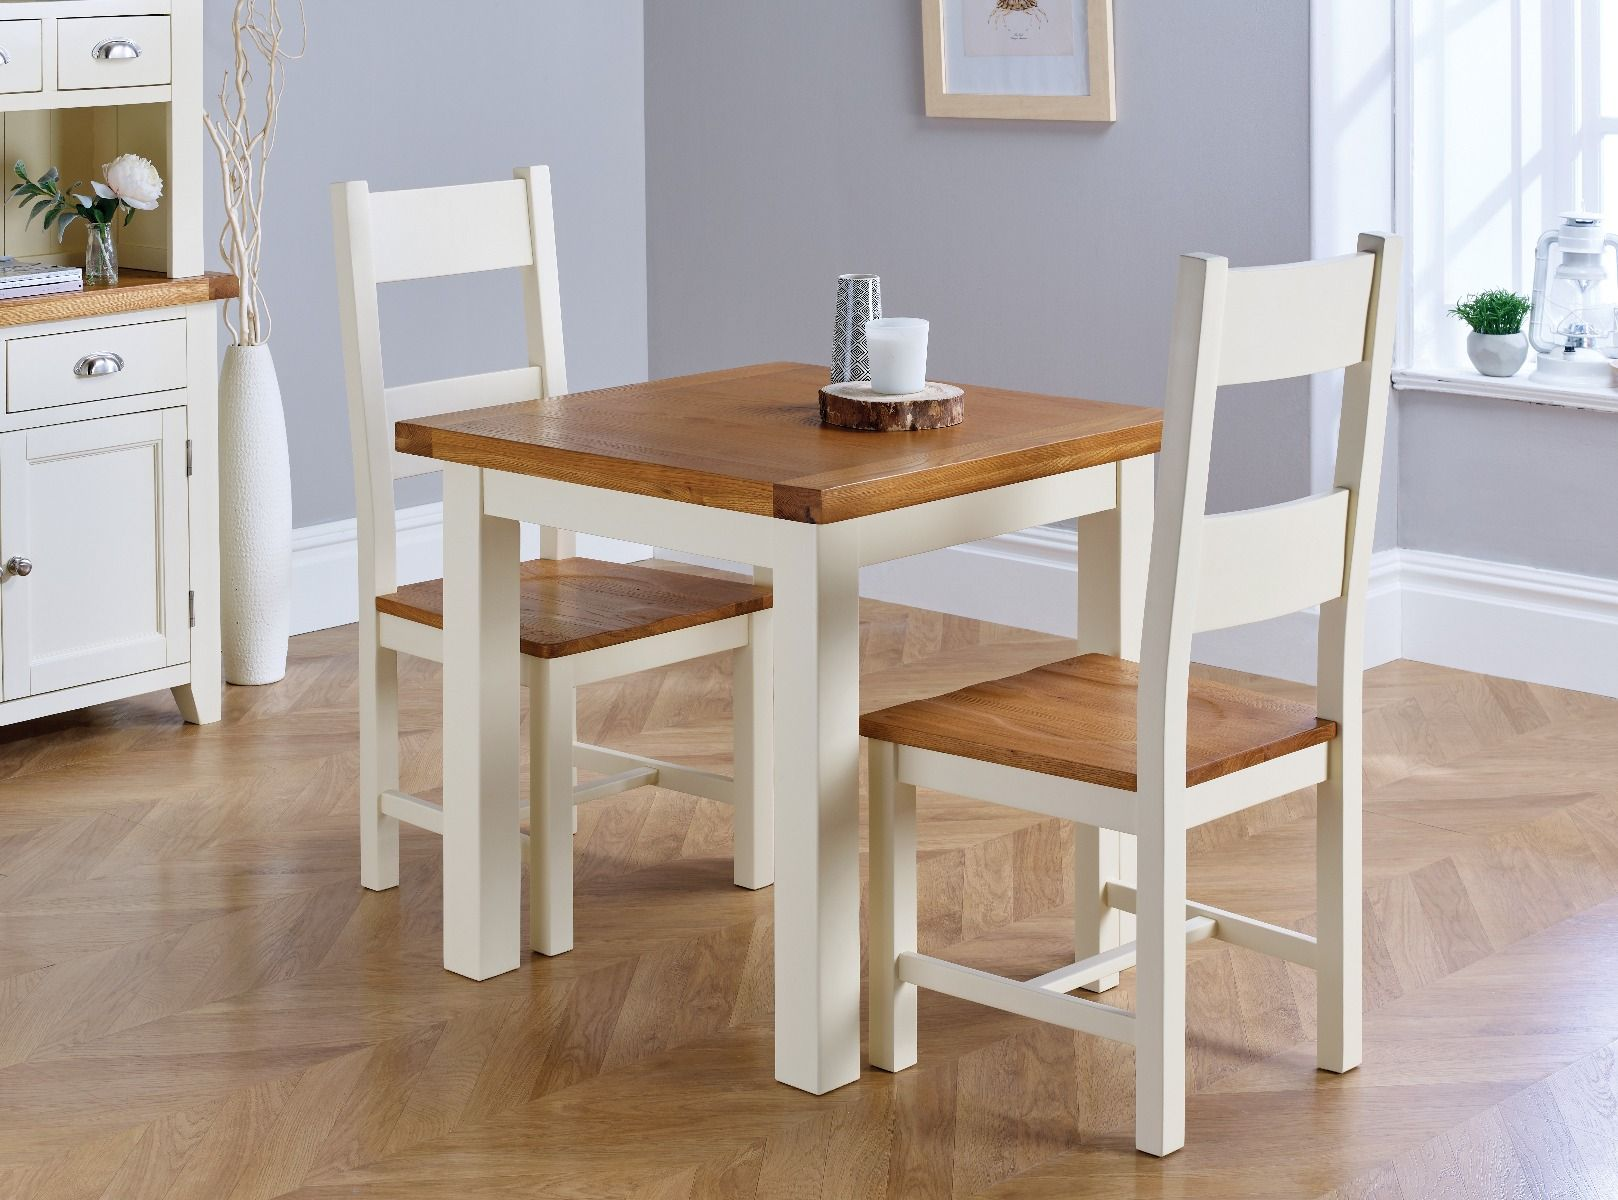 Country Oak 80cm Cream Oak Table Pair Of Matching Cream Oak Chairs Compact Dining Set